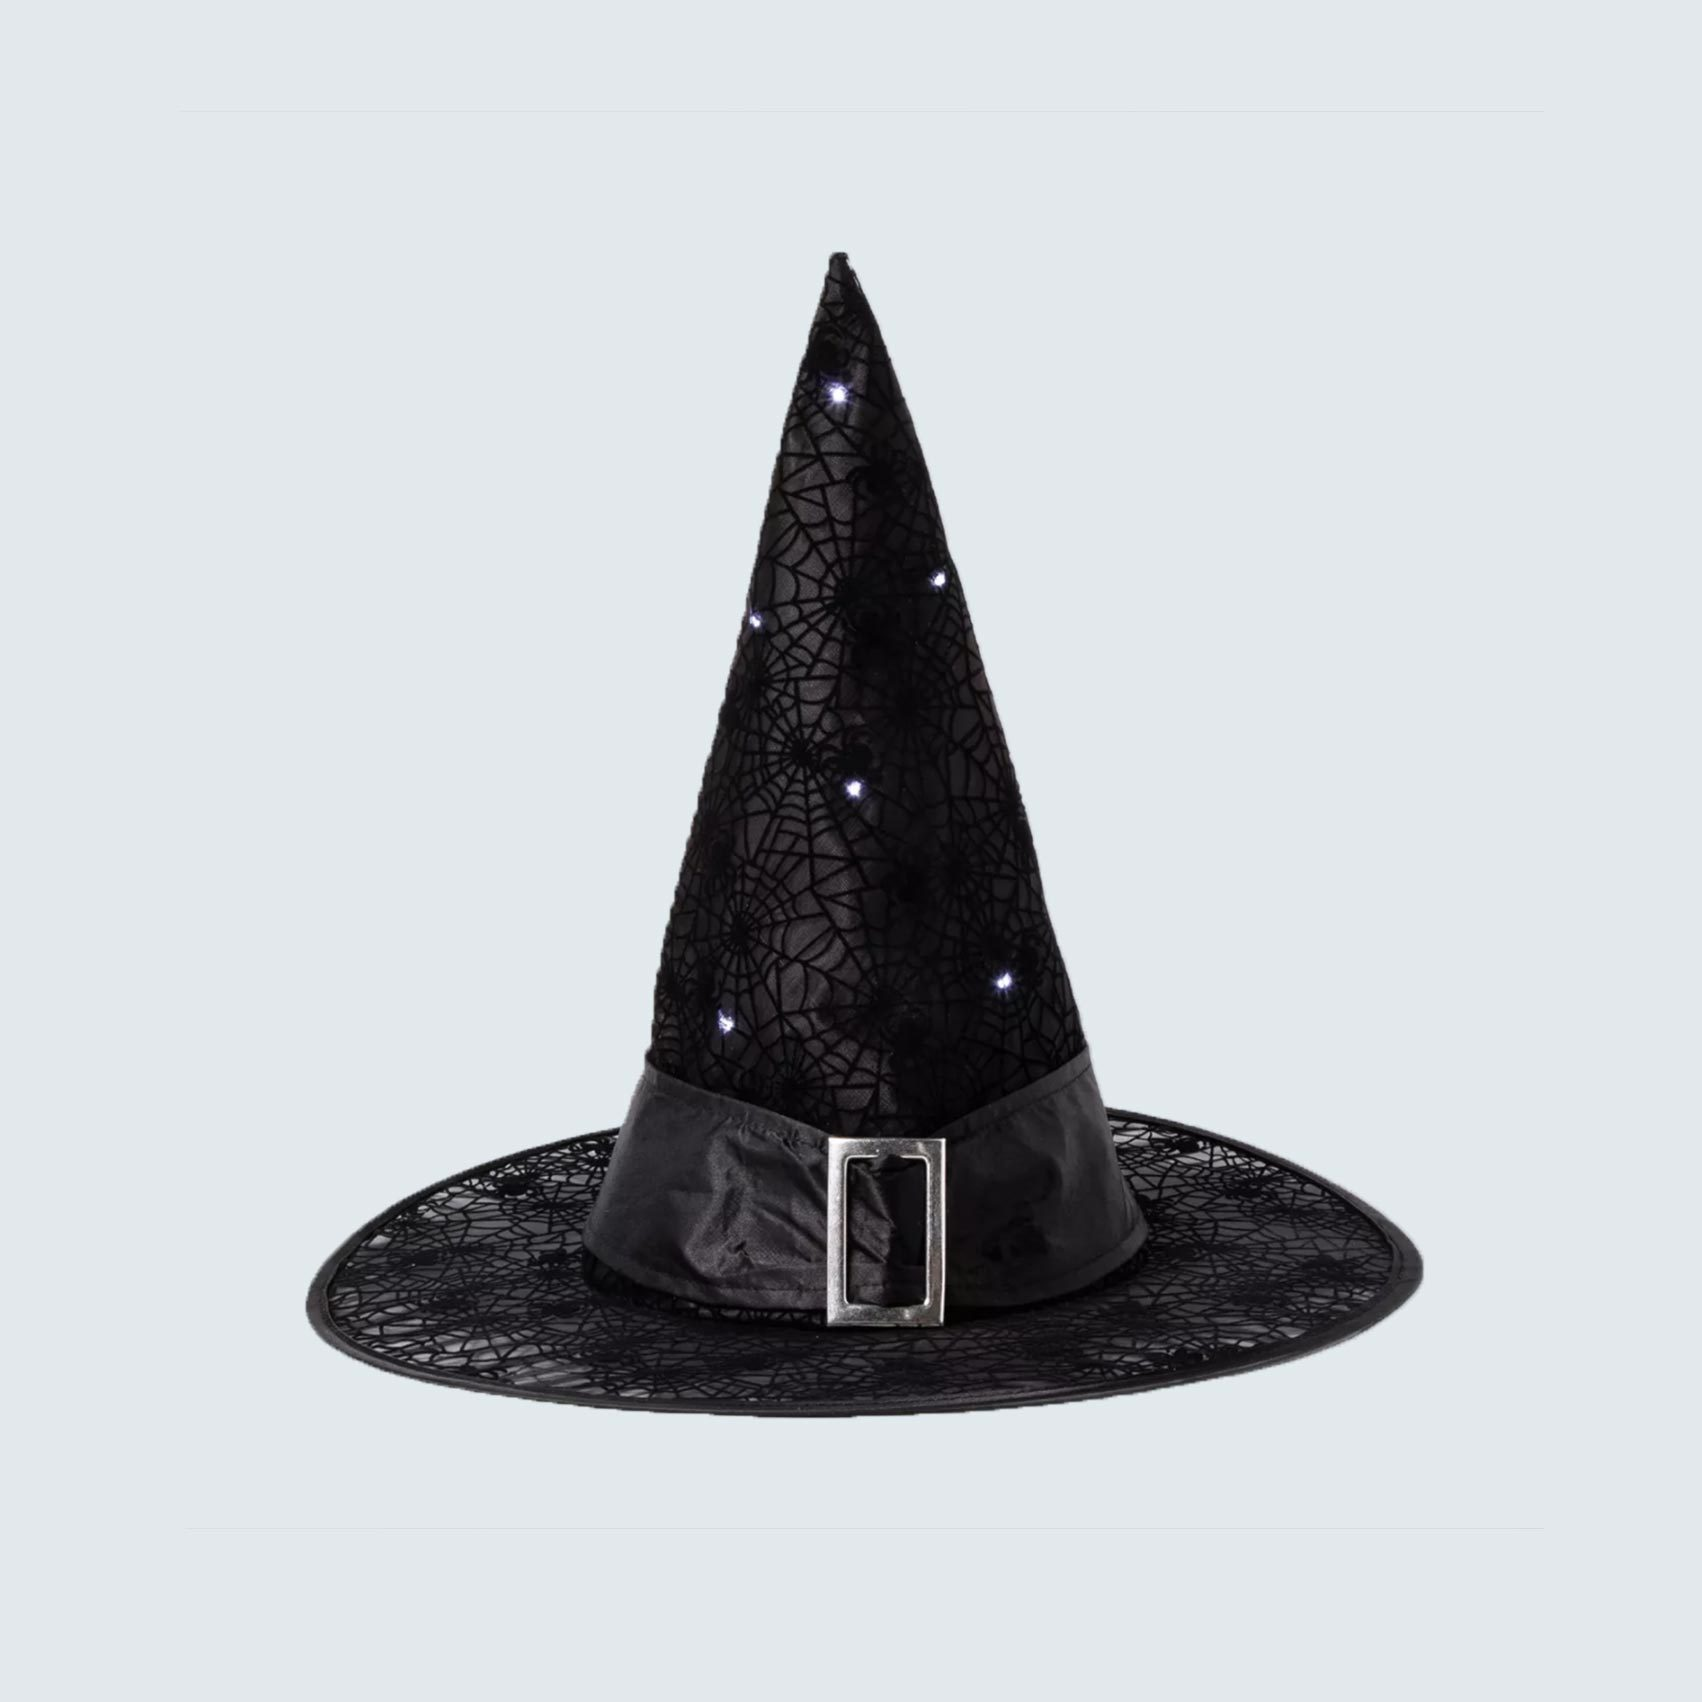 Witch's hat with blinking lights